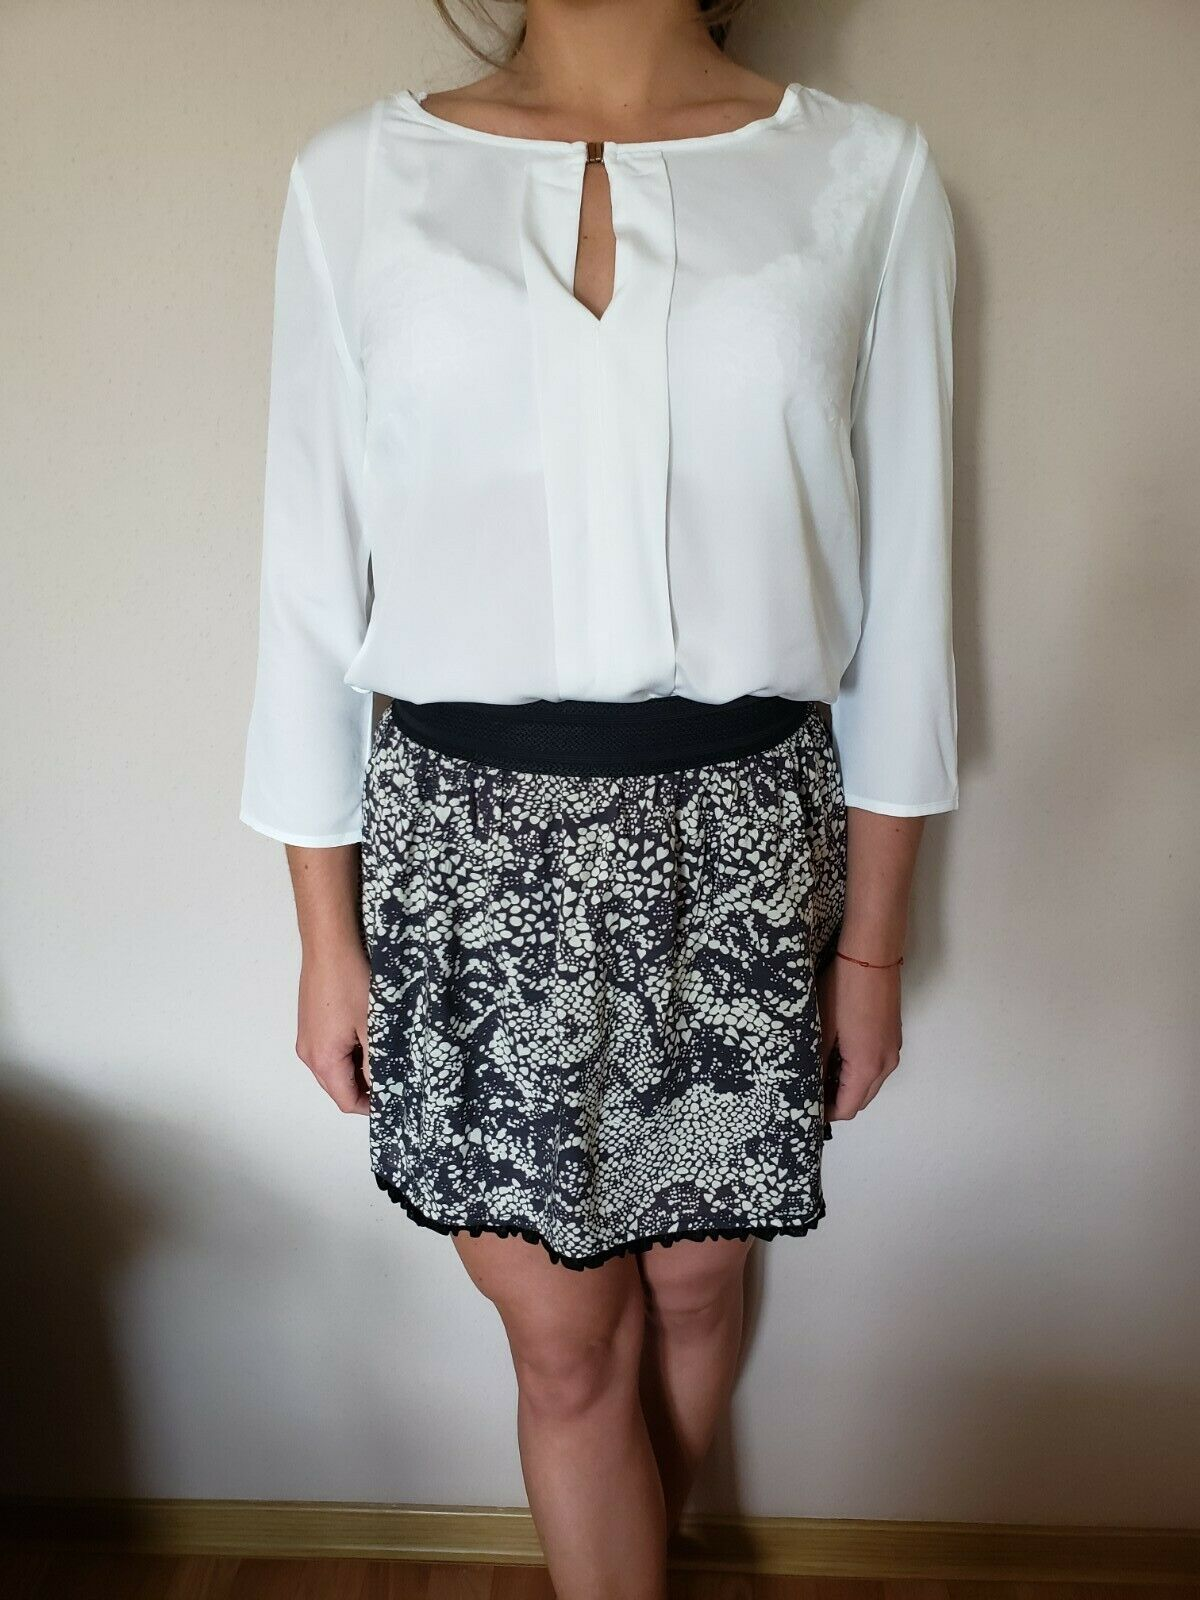 Damen Outfit: Rock, Only, Gr. XS + weiße Bluse, H&M, Gr. 36